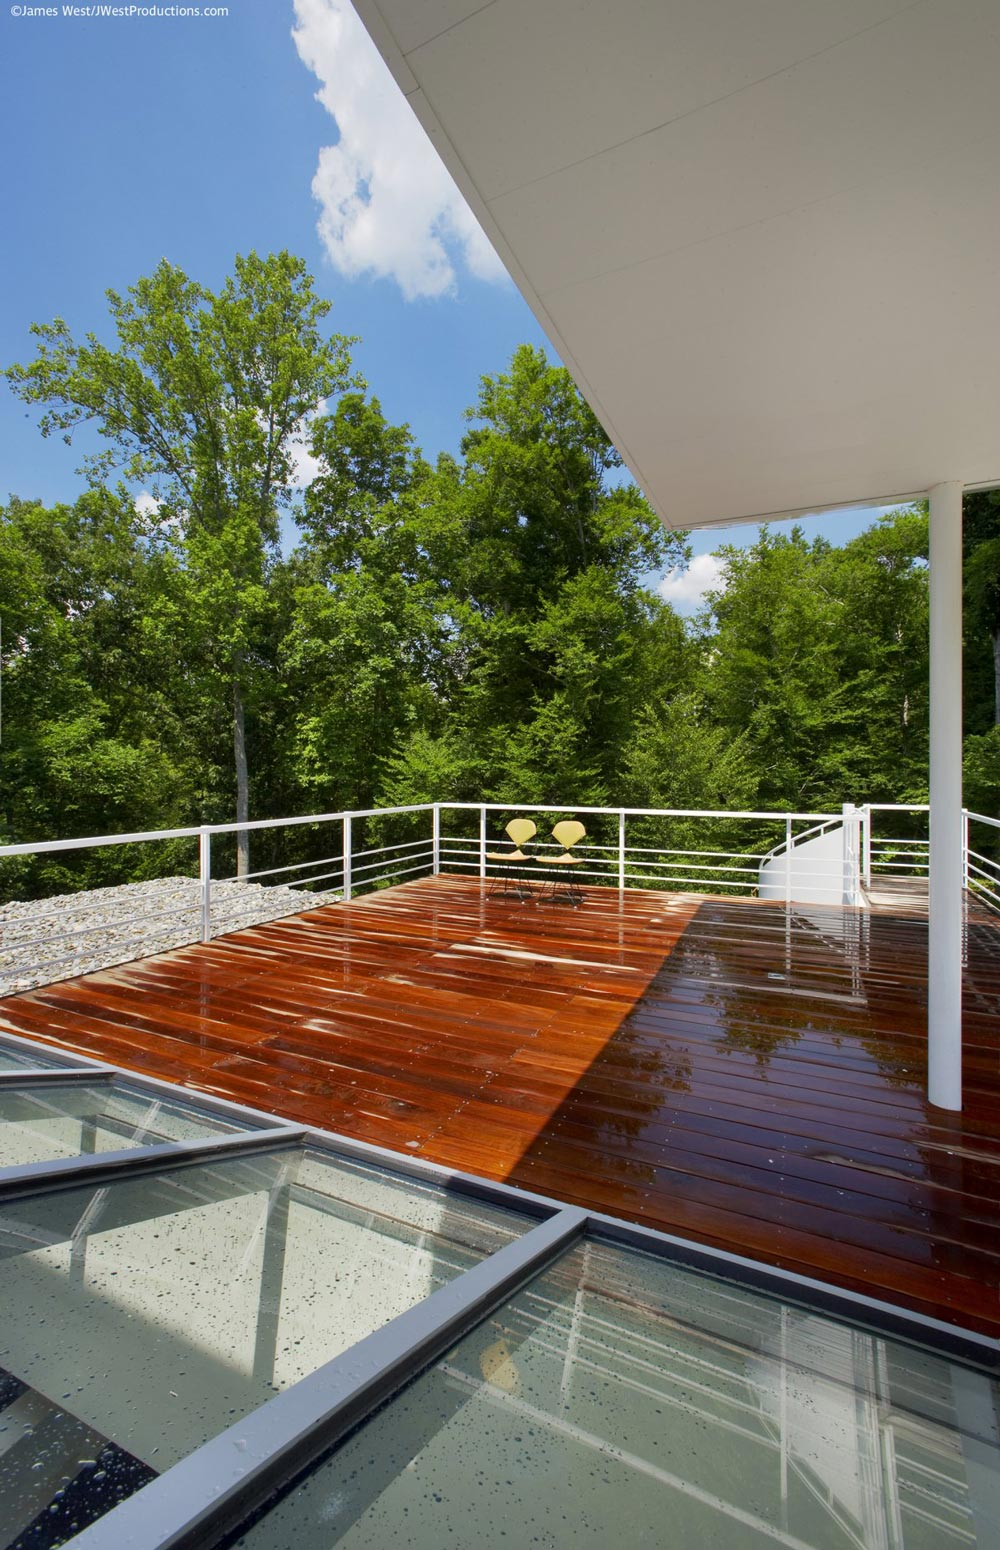 Wood Terrace, Chiles Residence in Raleigh, North Carolina by Tonic Design + Construction